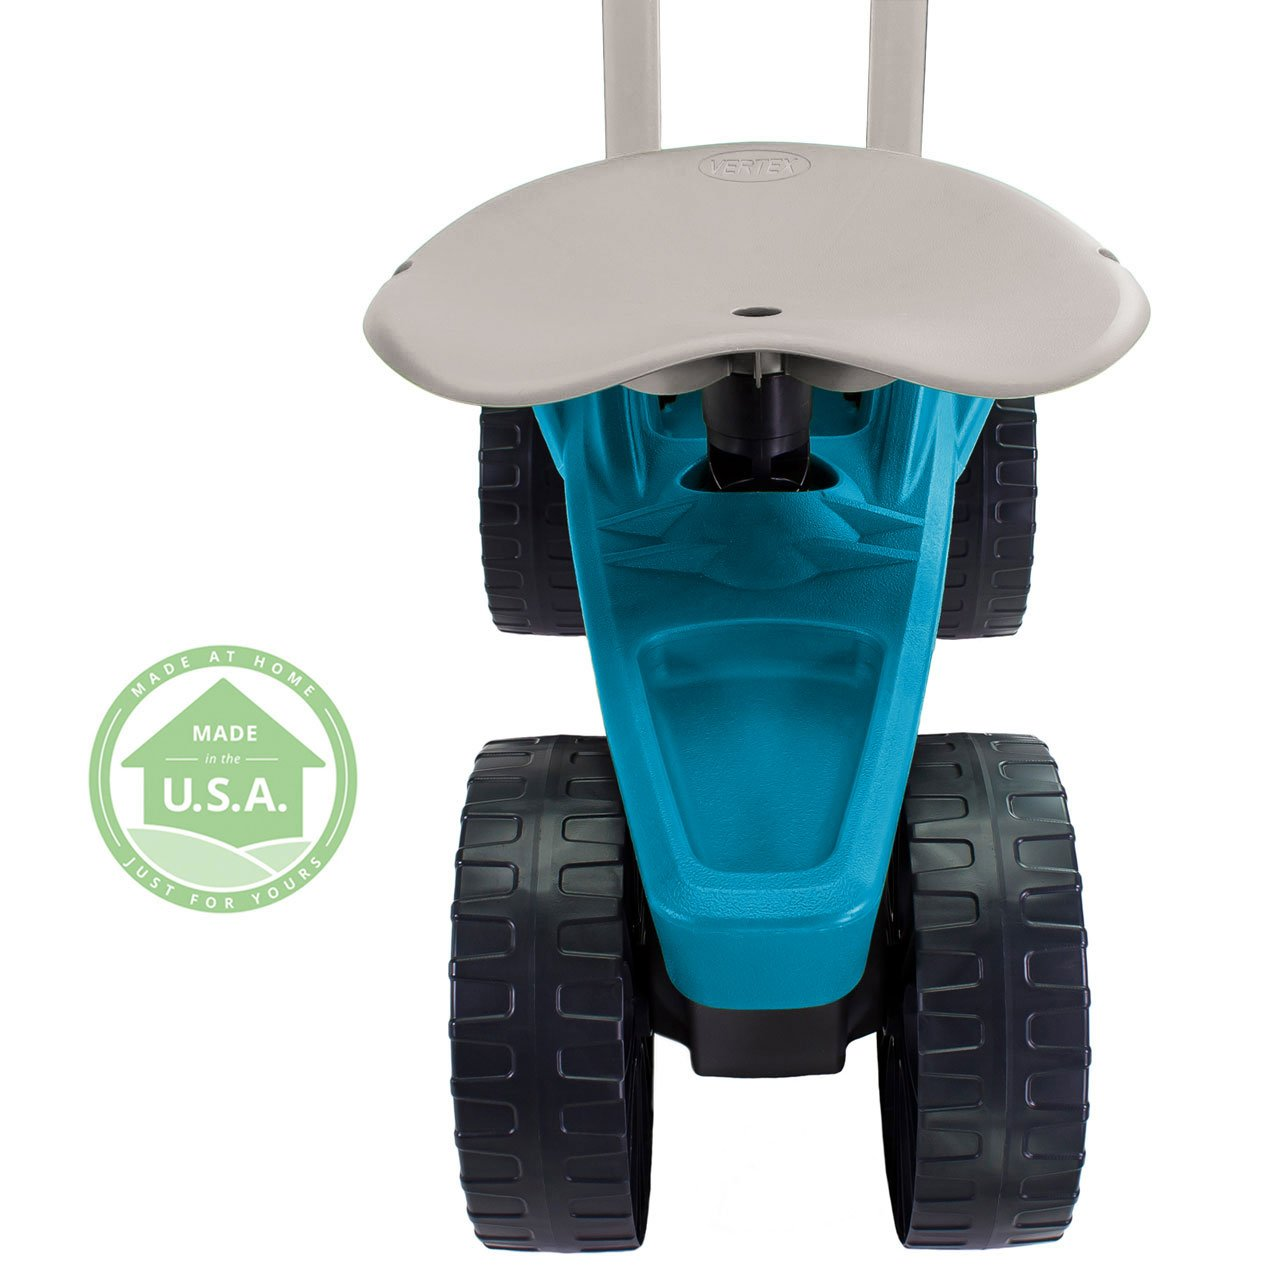 Easy Up Deluxe XTV Rolling Garden Seat and Scoot - Adjustable Swivel Seat, Heavy Duty Wheels, and Ergonomic Design To Assist Standing, Sitting, and Bending Over Made in the USA (Deluxe XTV Teal) by Vertex (Image #6)